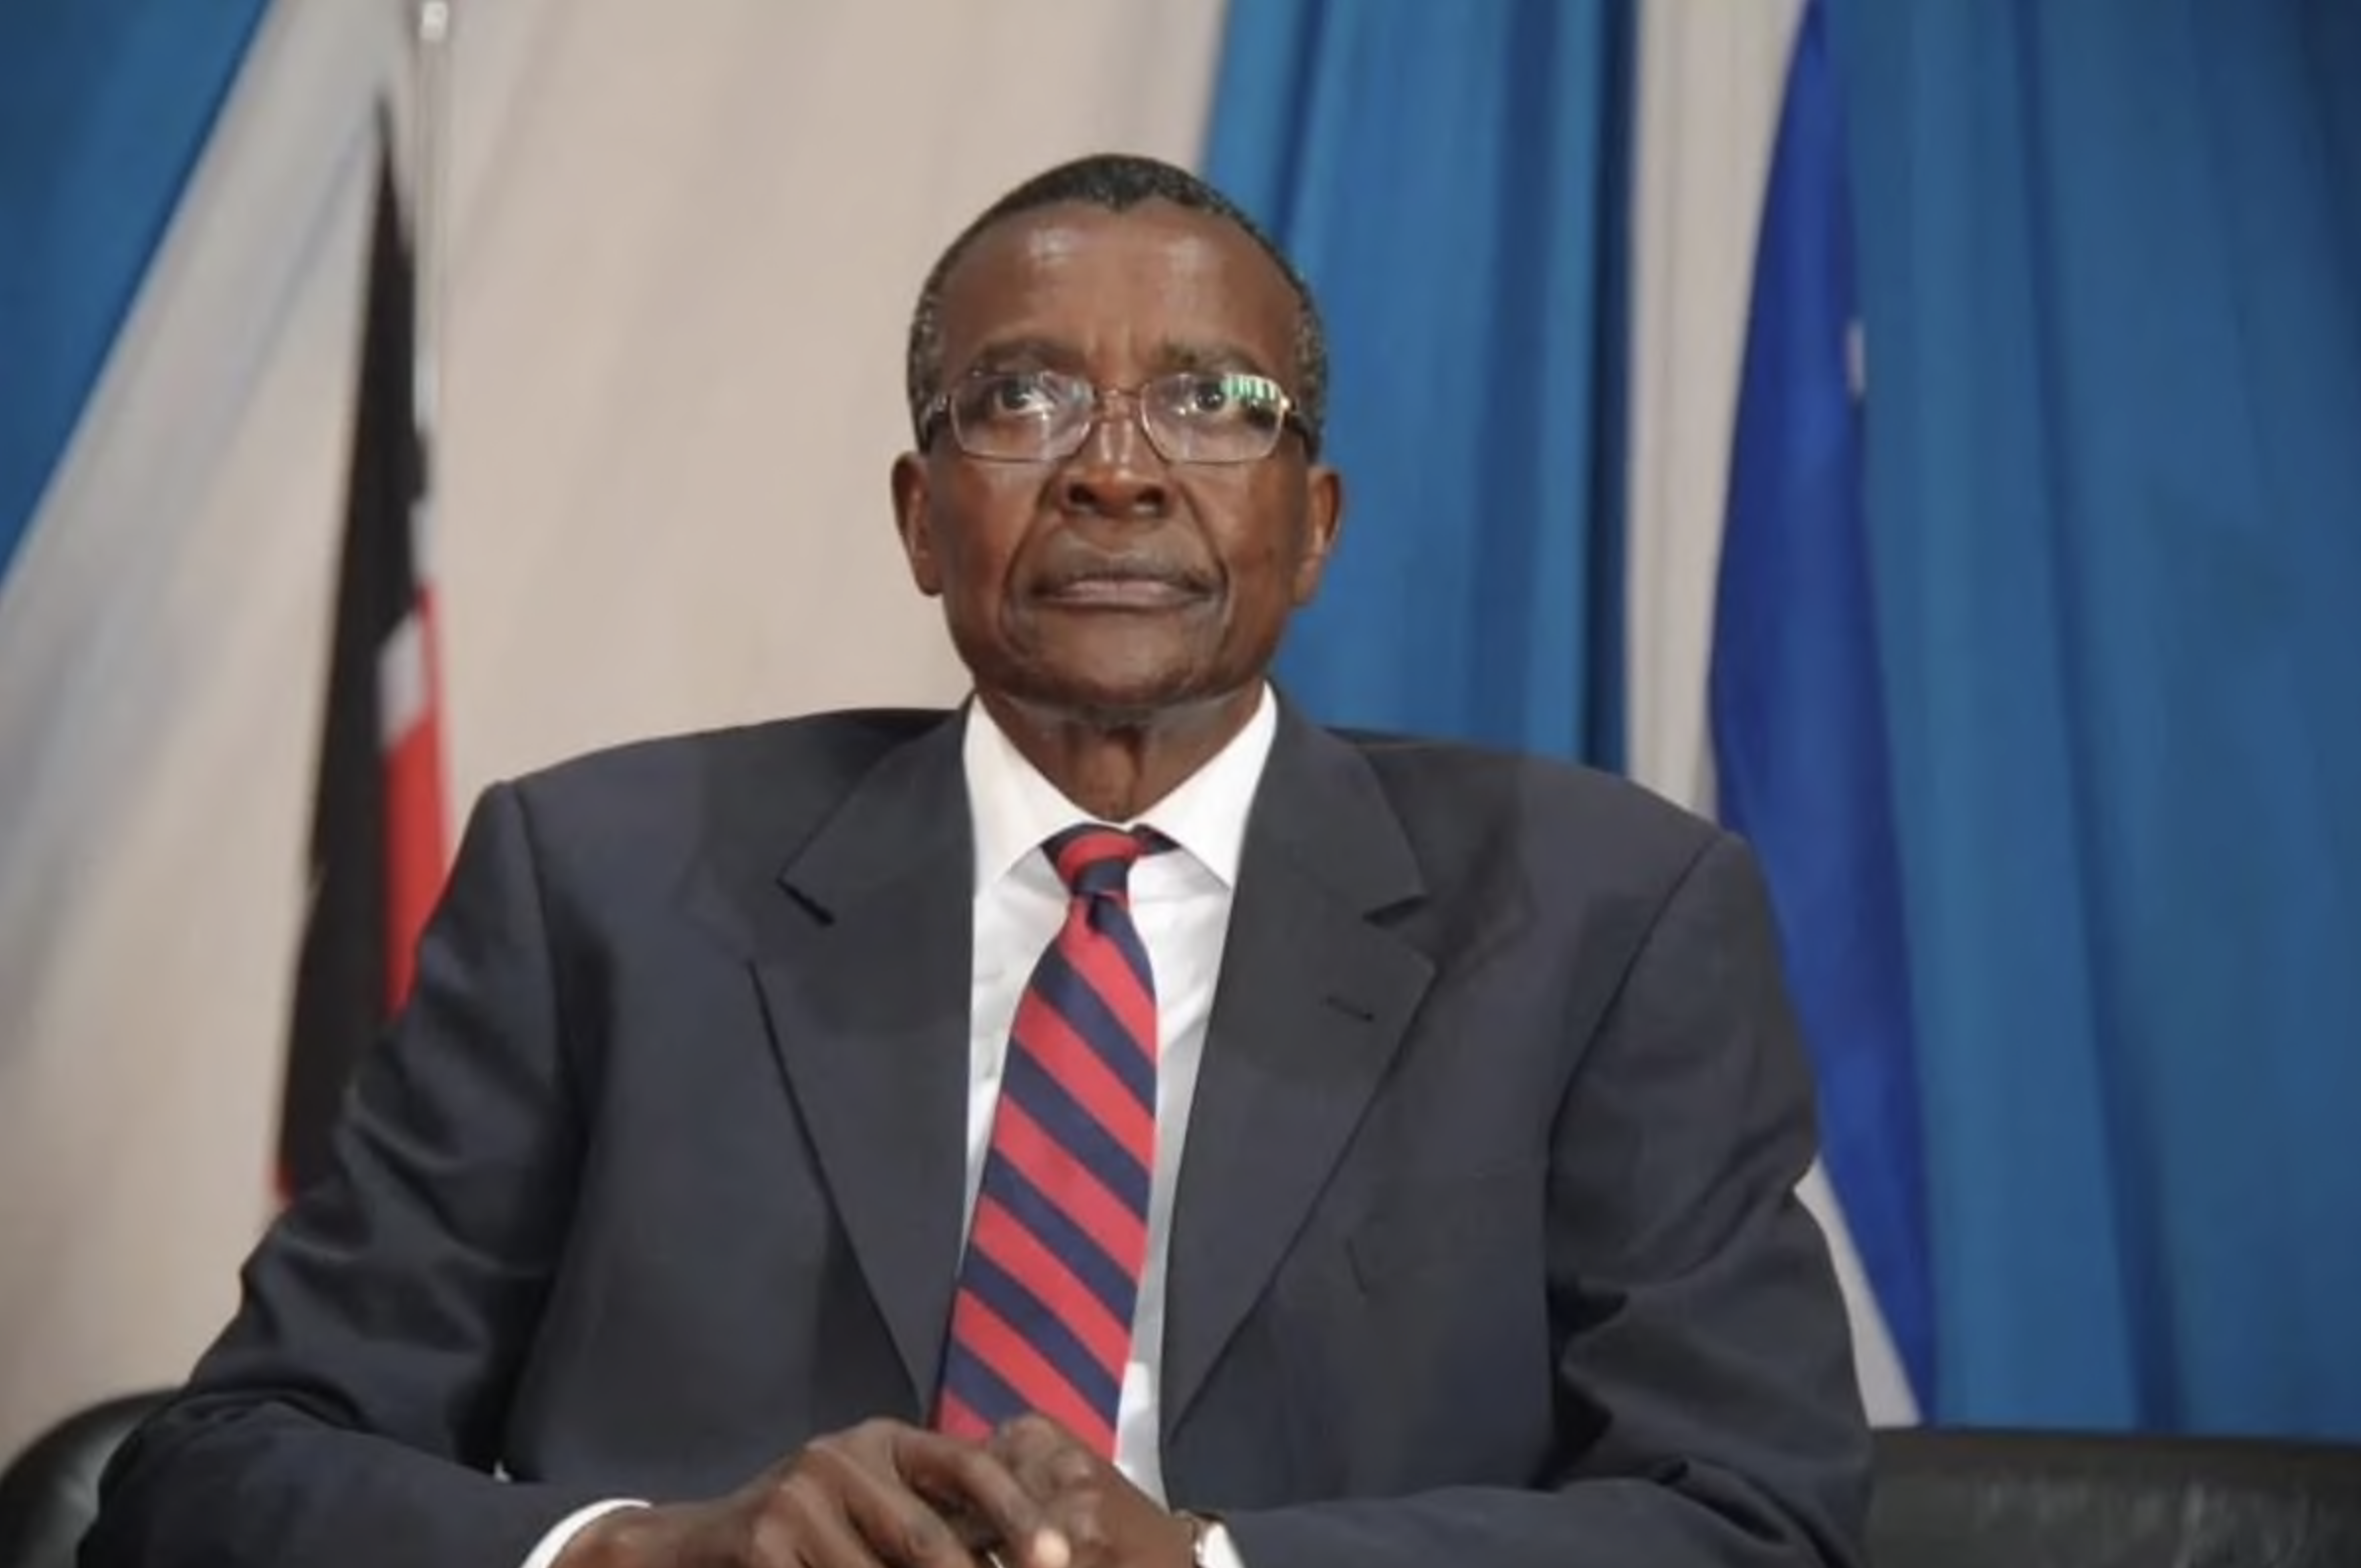 No open court sessions until after COVID-19  – Maraga